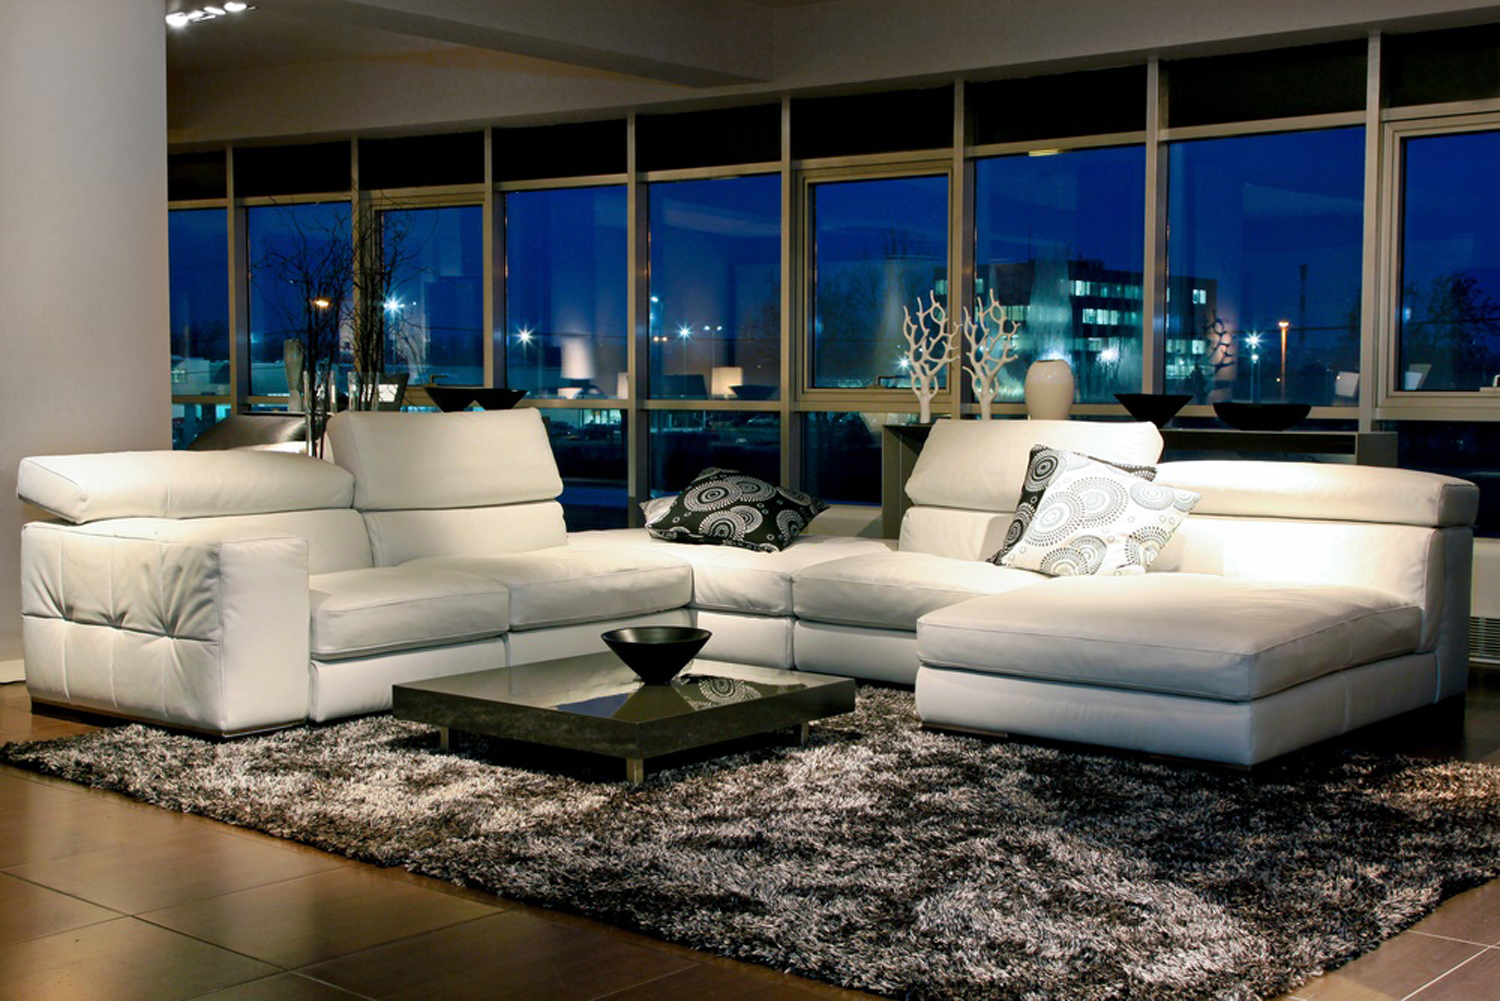 Spacious living room with beautiful view through glass wall